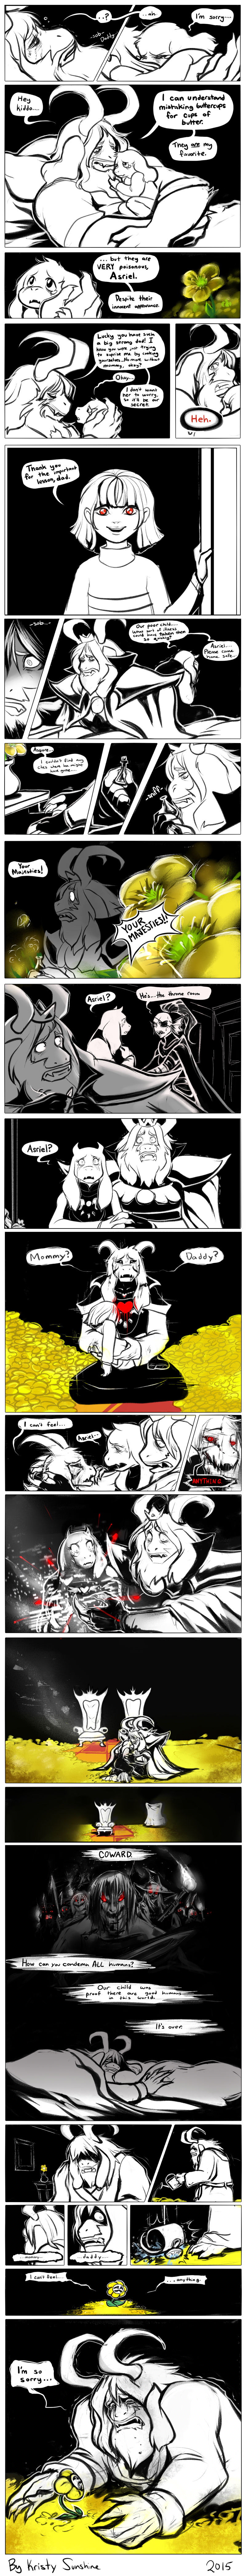 That's rough, buddy (UNDERTALE SPOILERS)